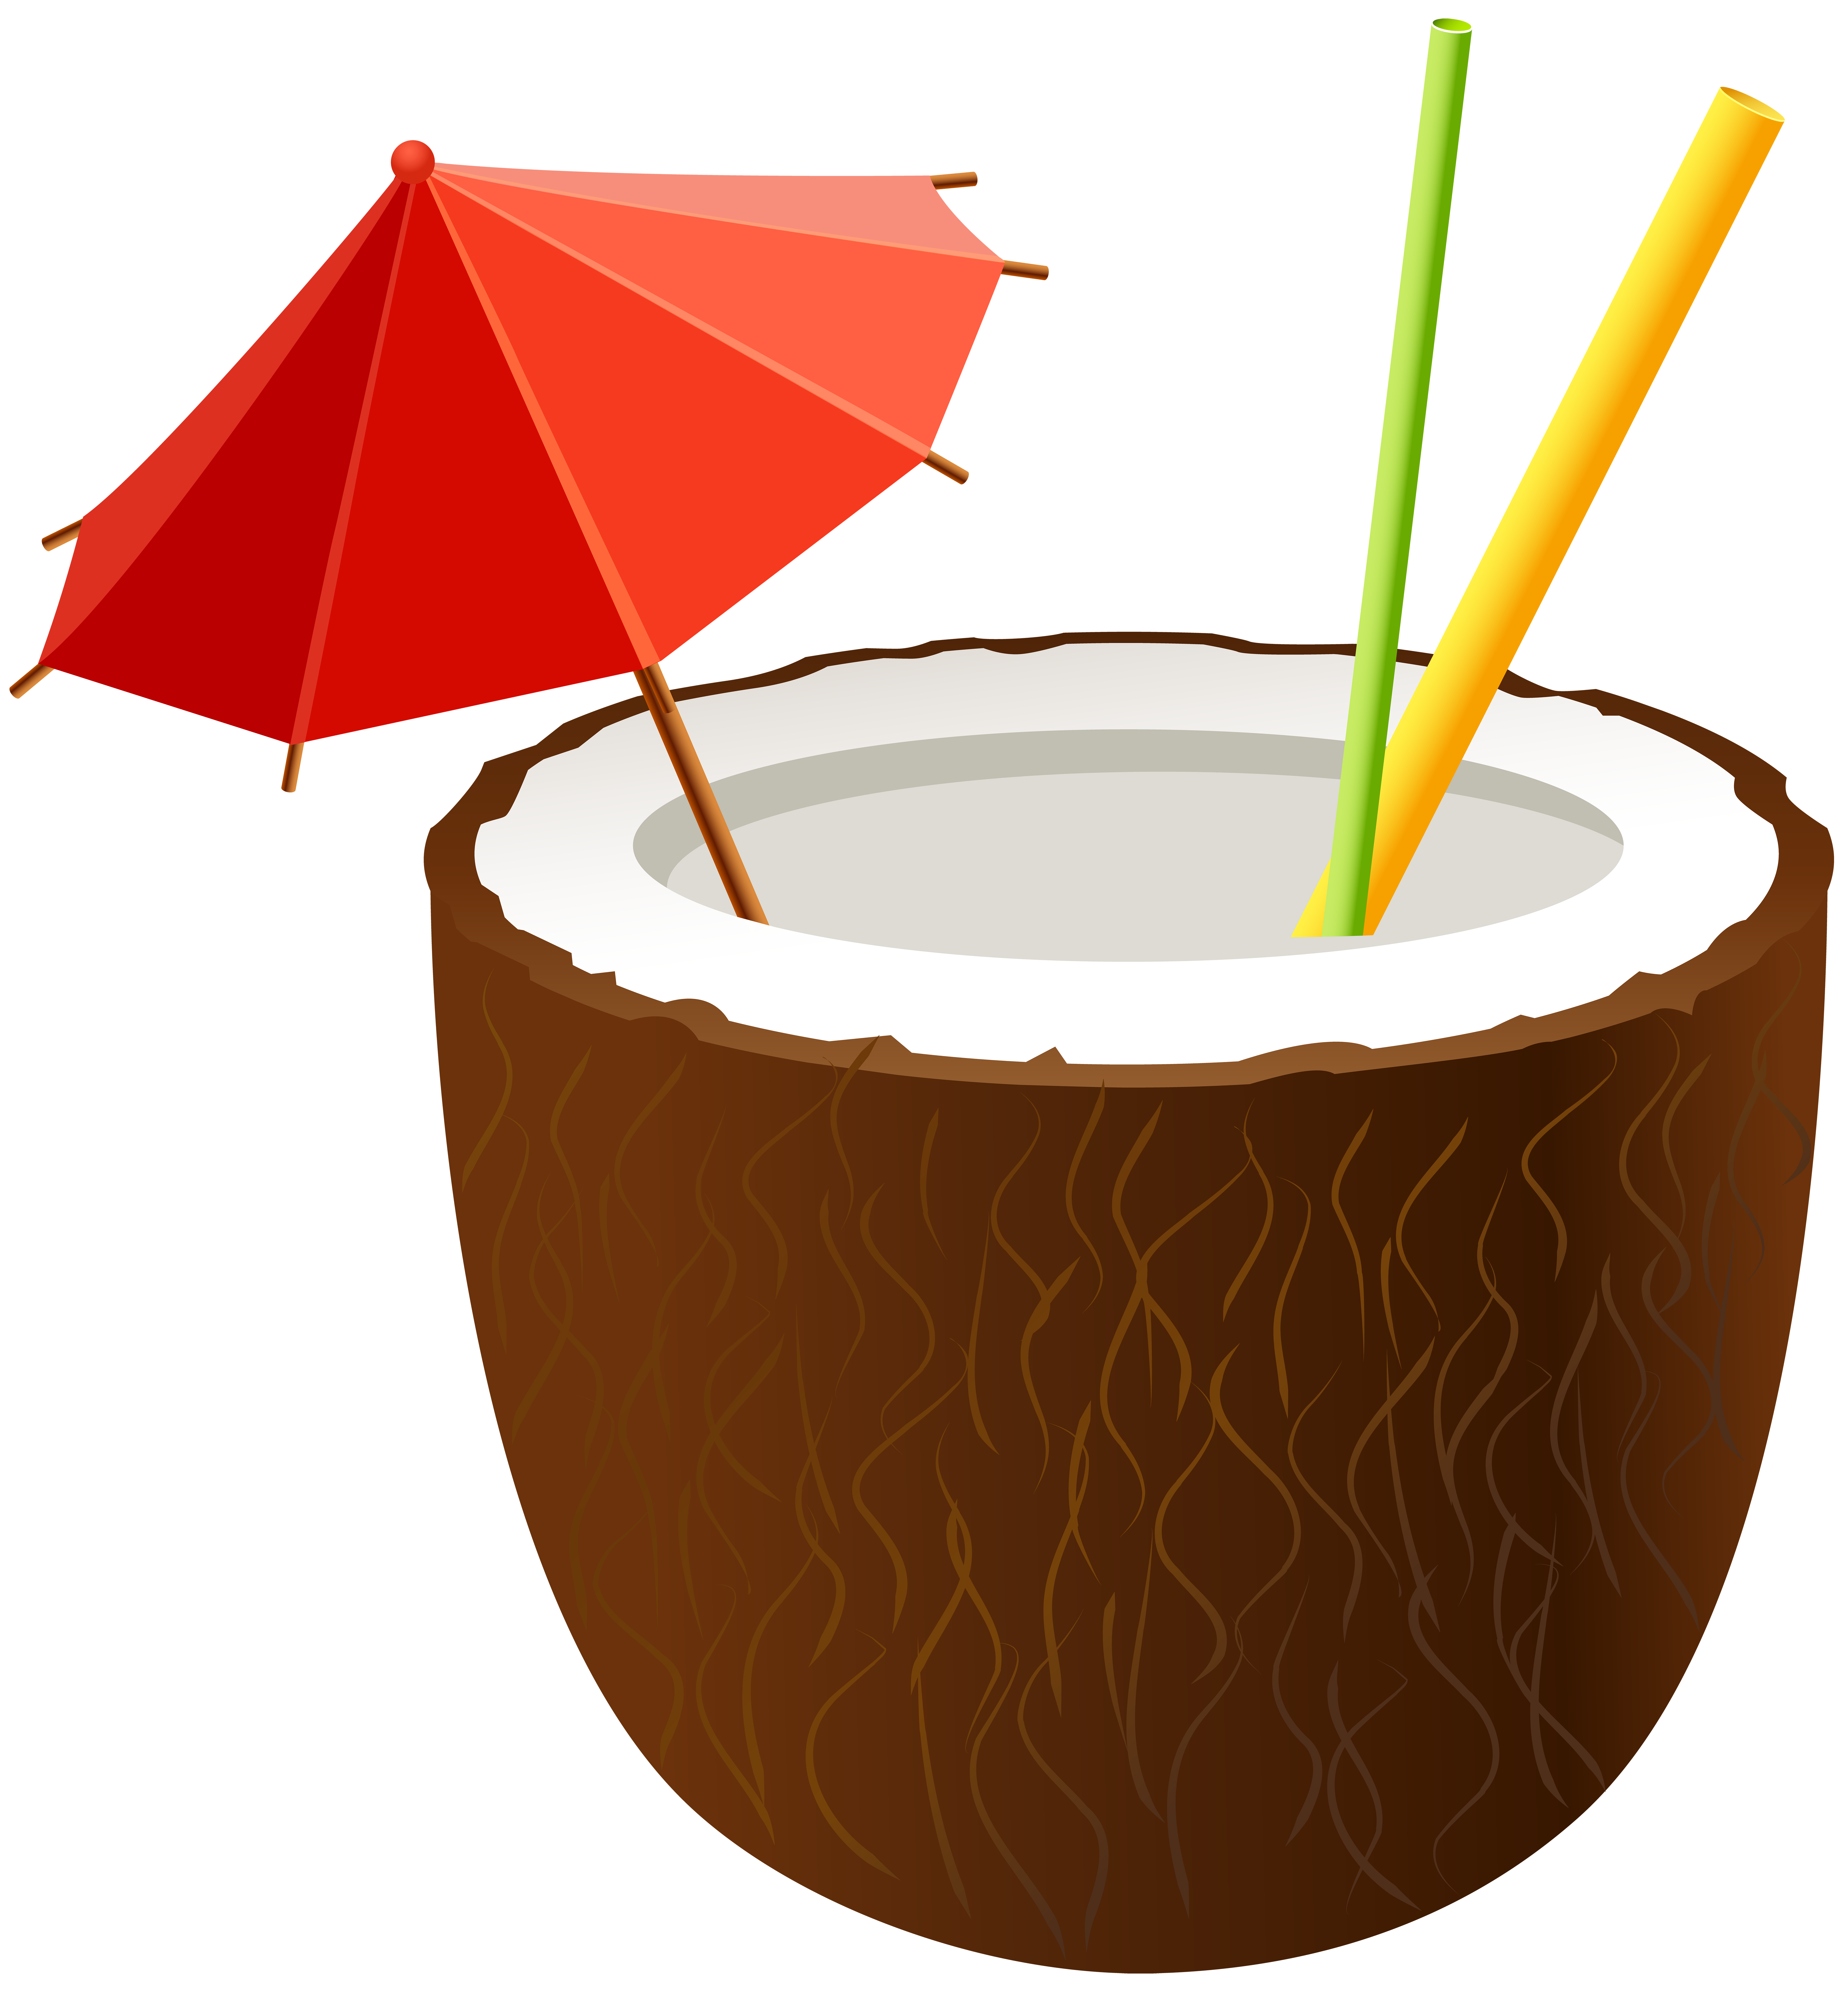 Coconut drink png. Cocktail clip art image